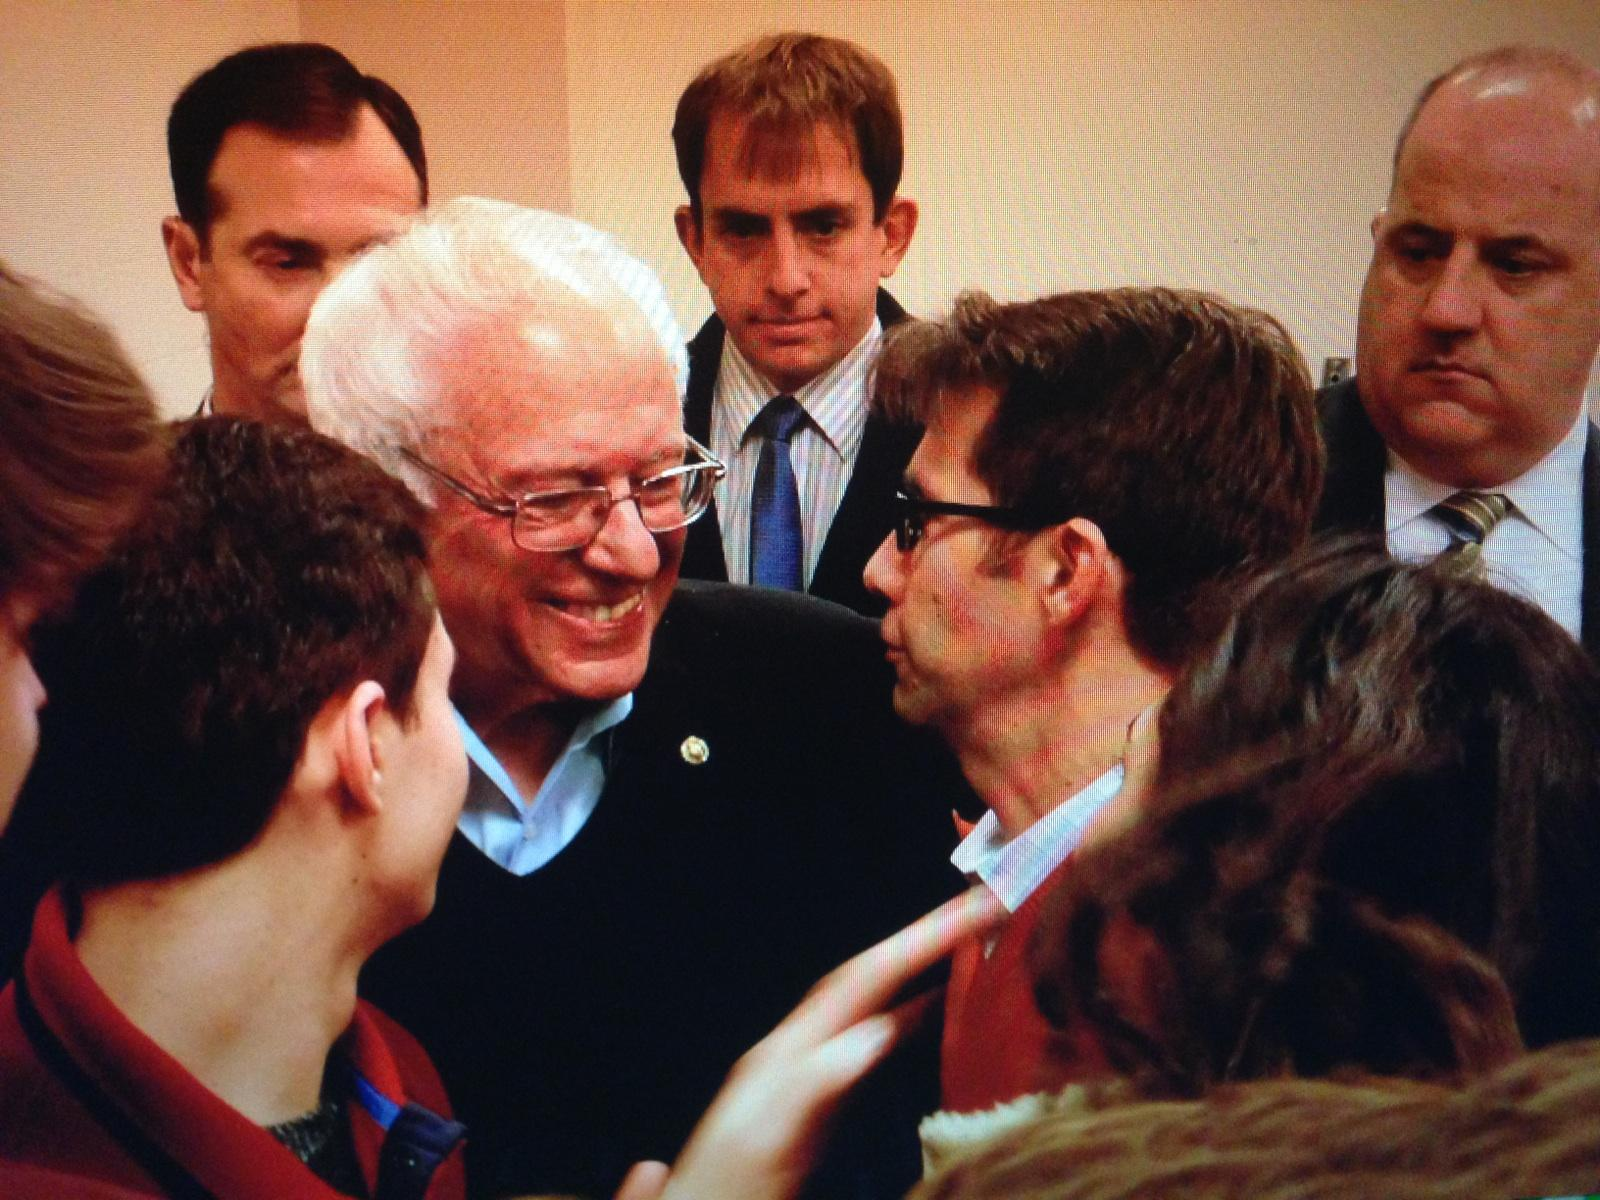 Sanders at an event in New Hampshire.